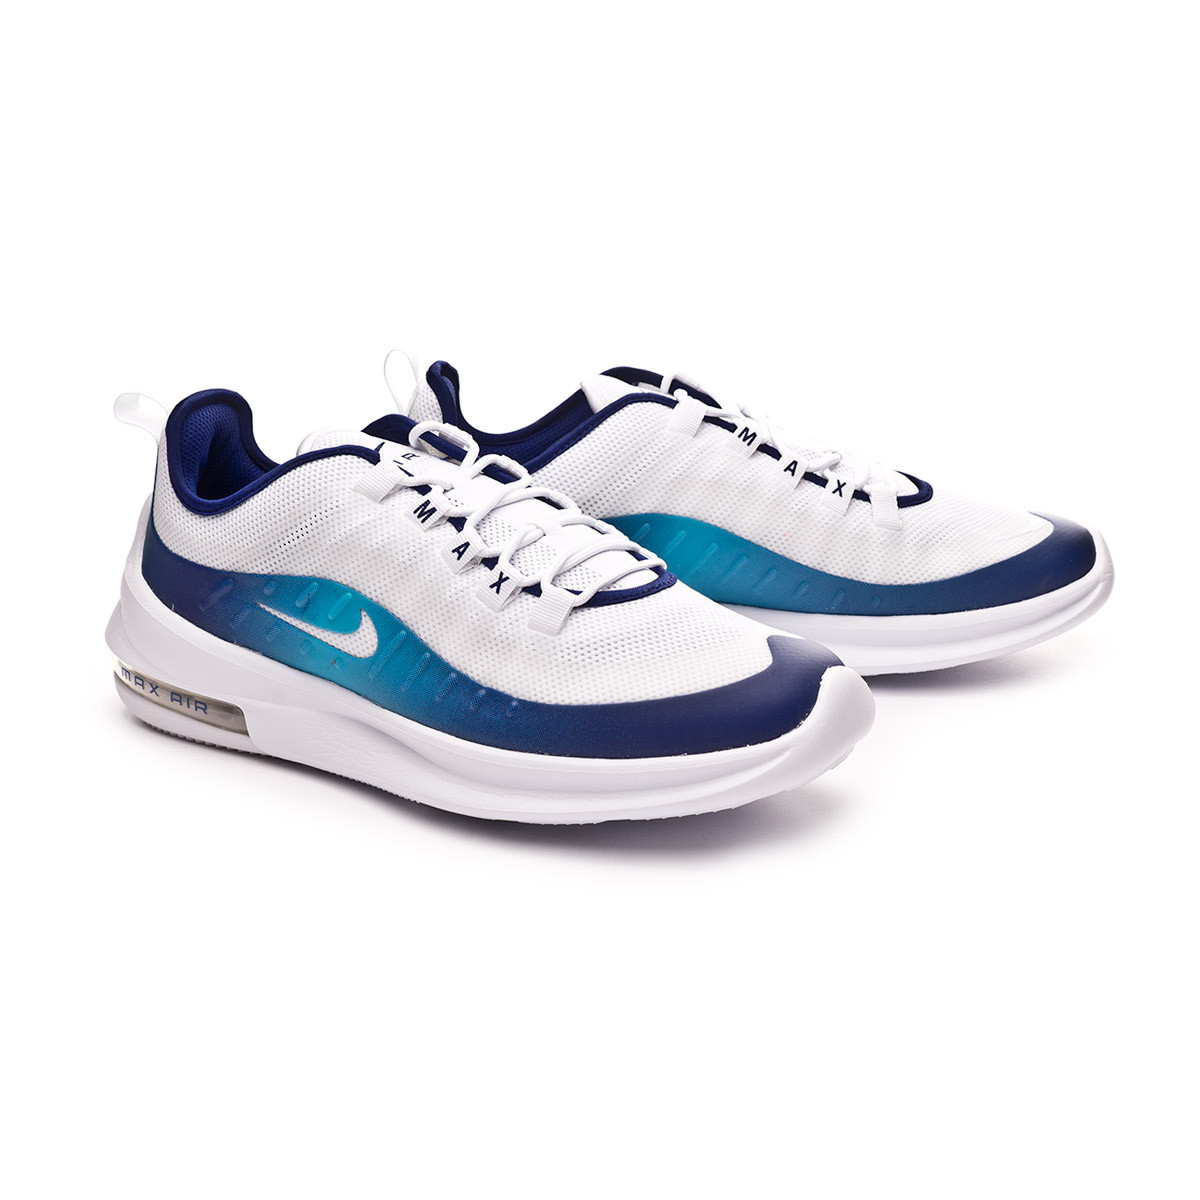 Nike Air Max Axis Premium Trainers